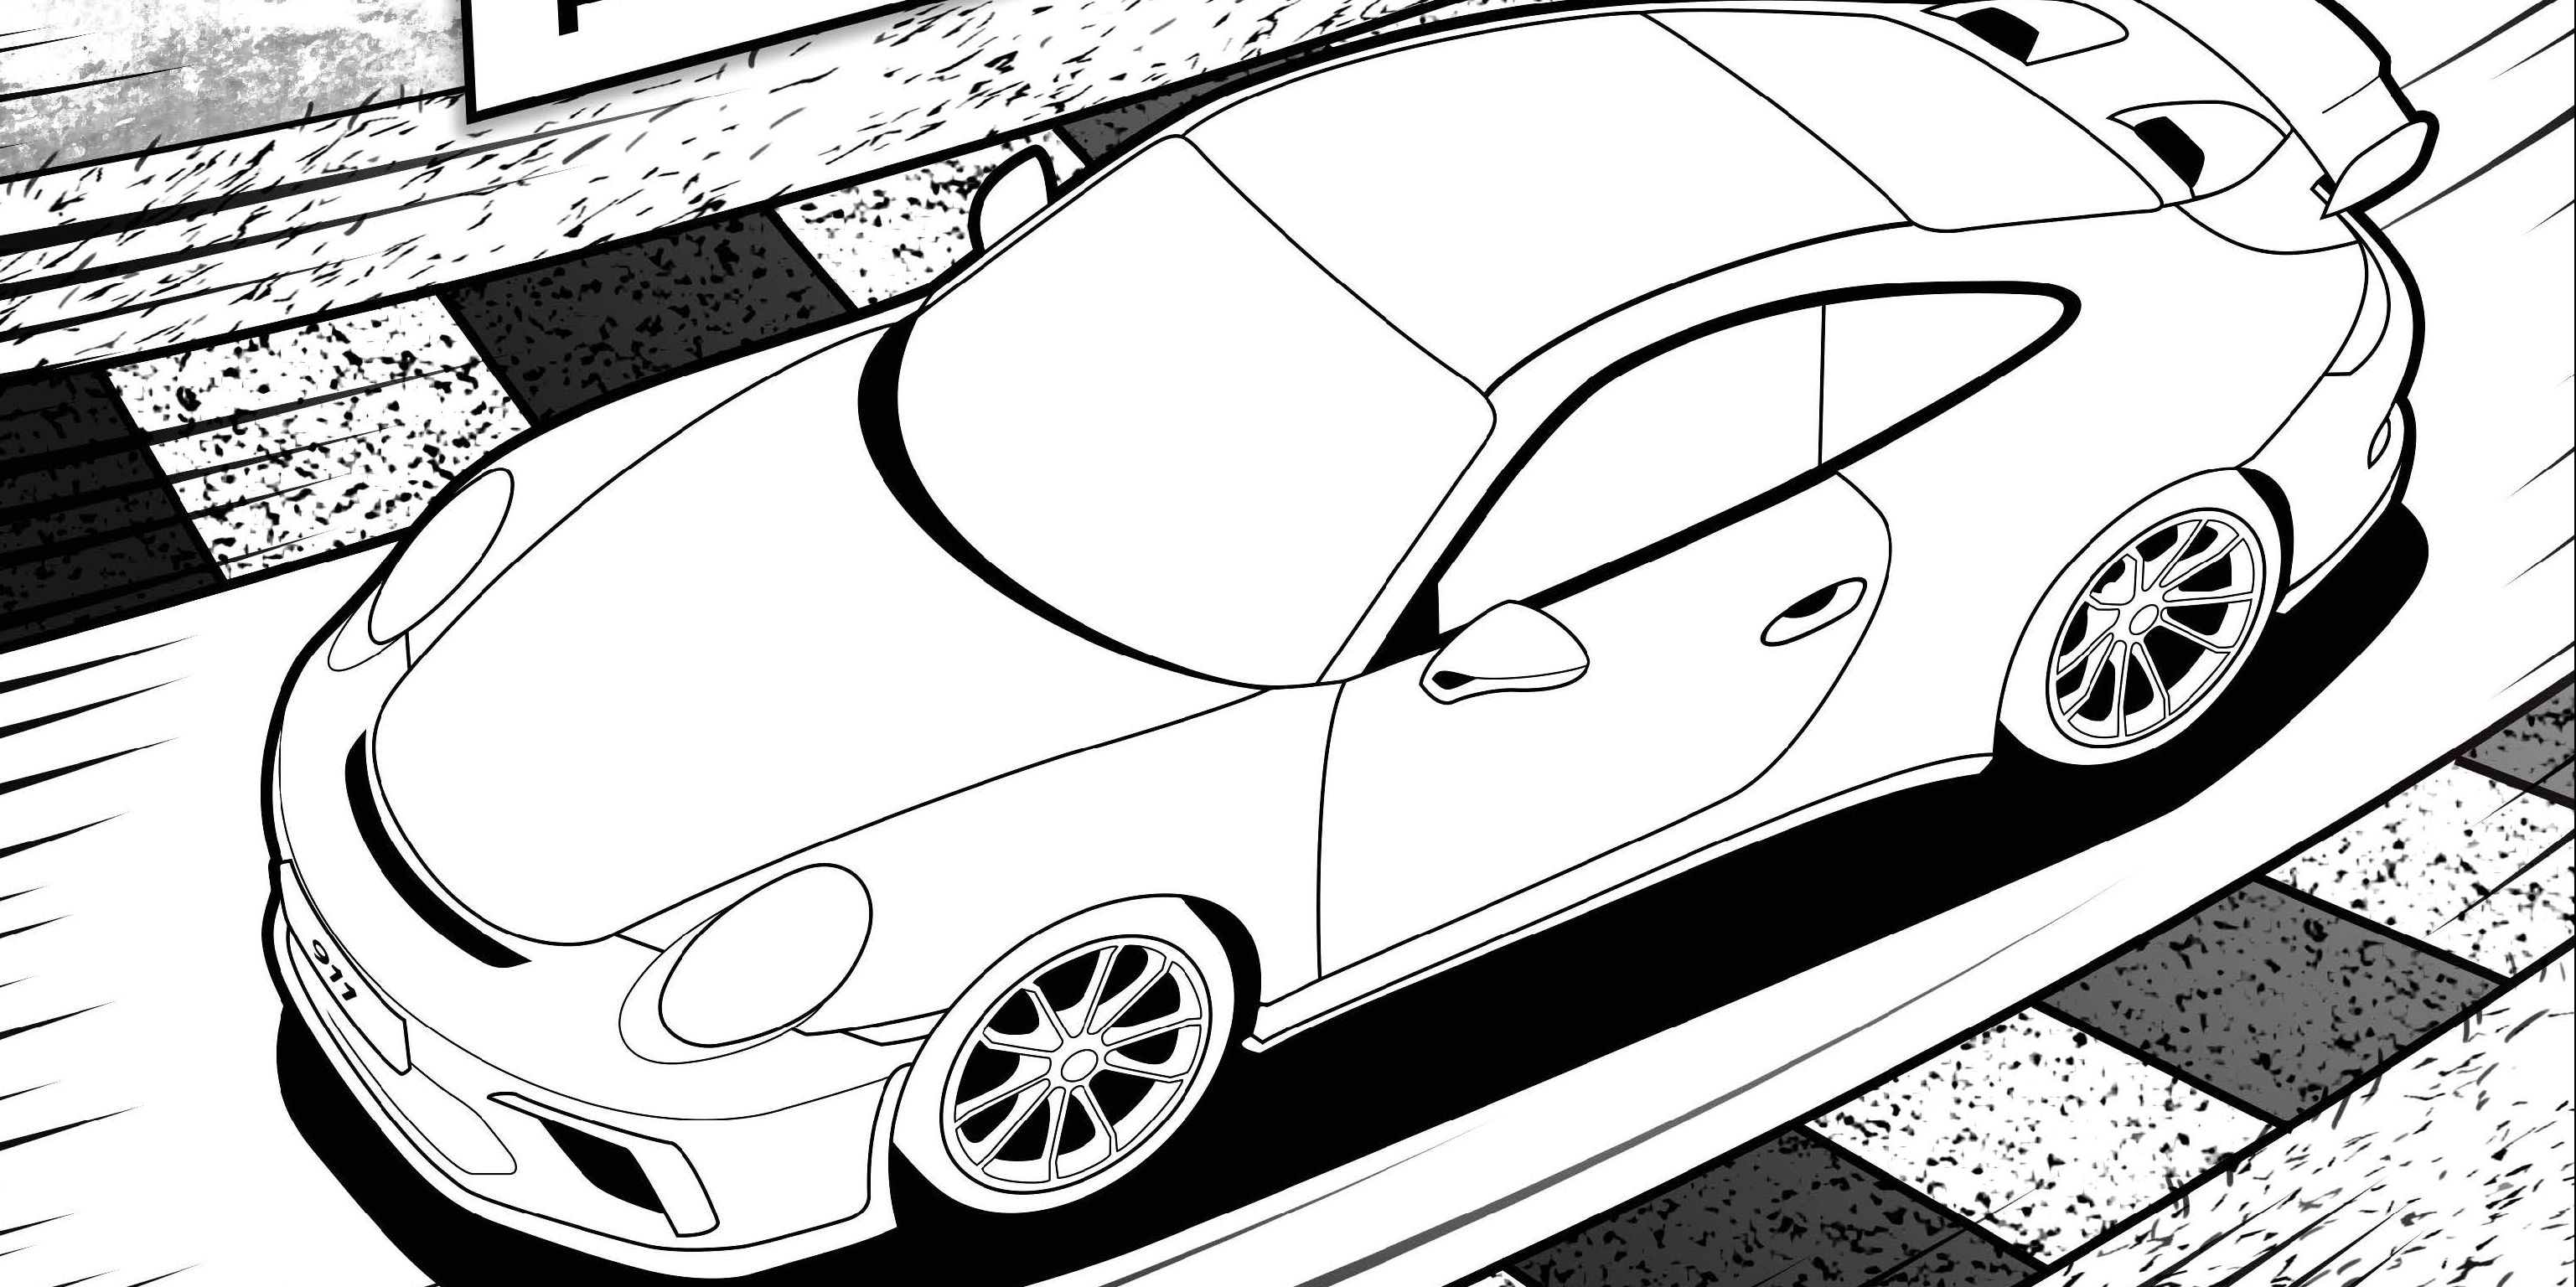 Next Gen Porsche 911 Gt3 Leaked In A Children S Coloring Book